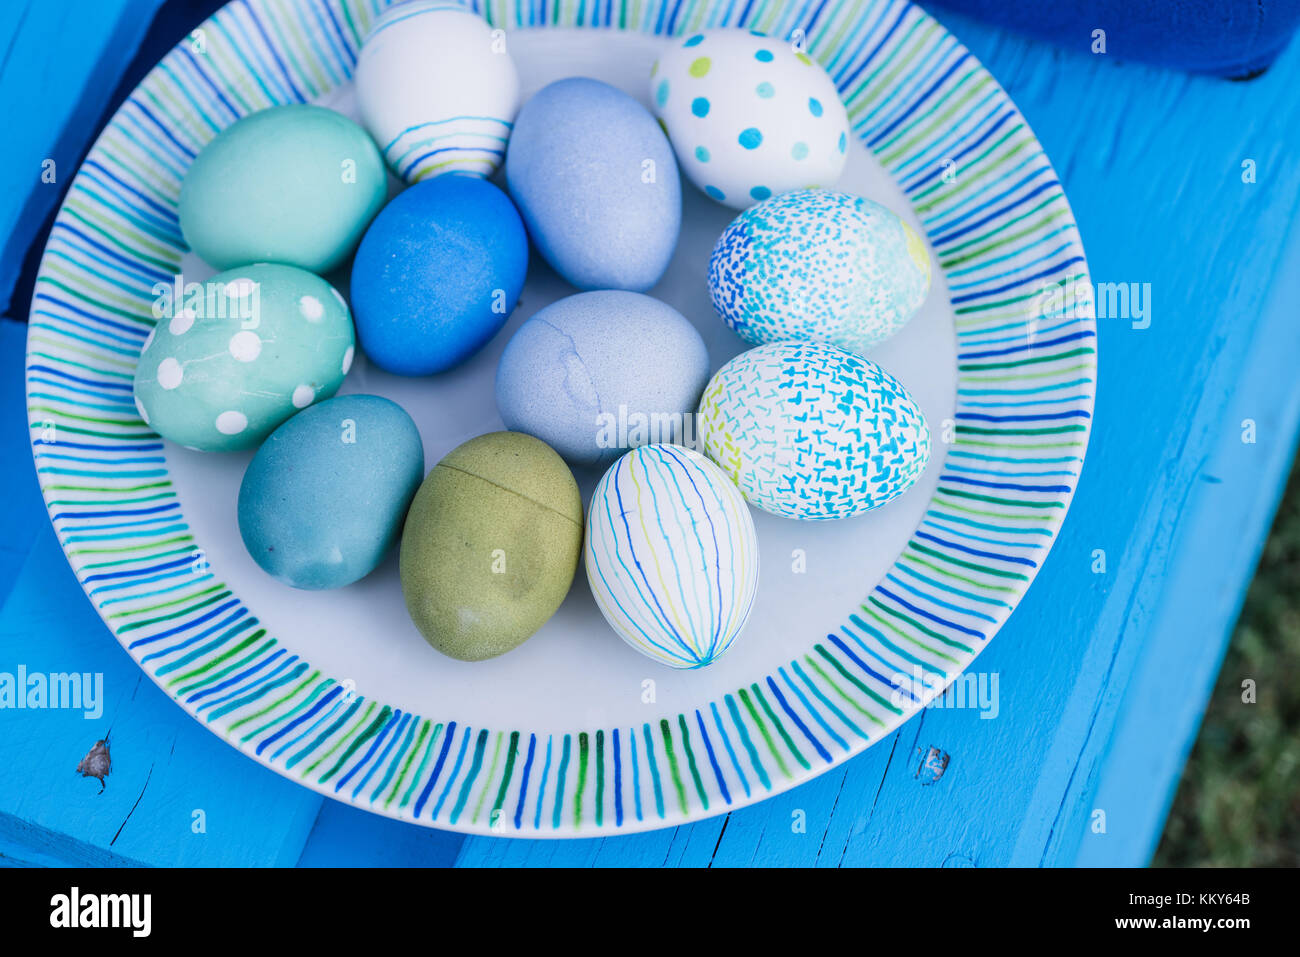 Garden, plate, Easter eggs, coloured, painted, - Stock Image